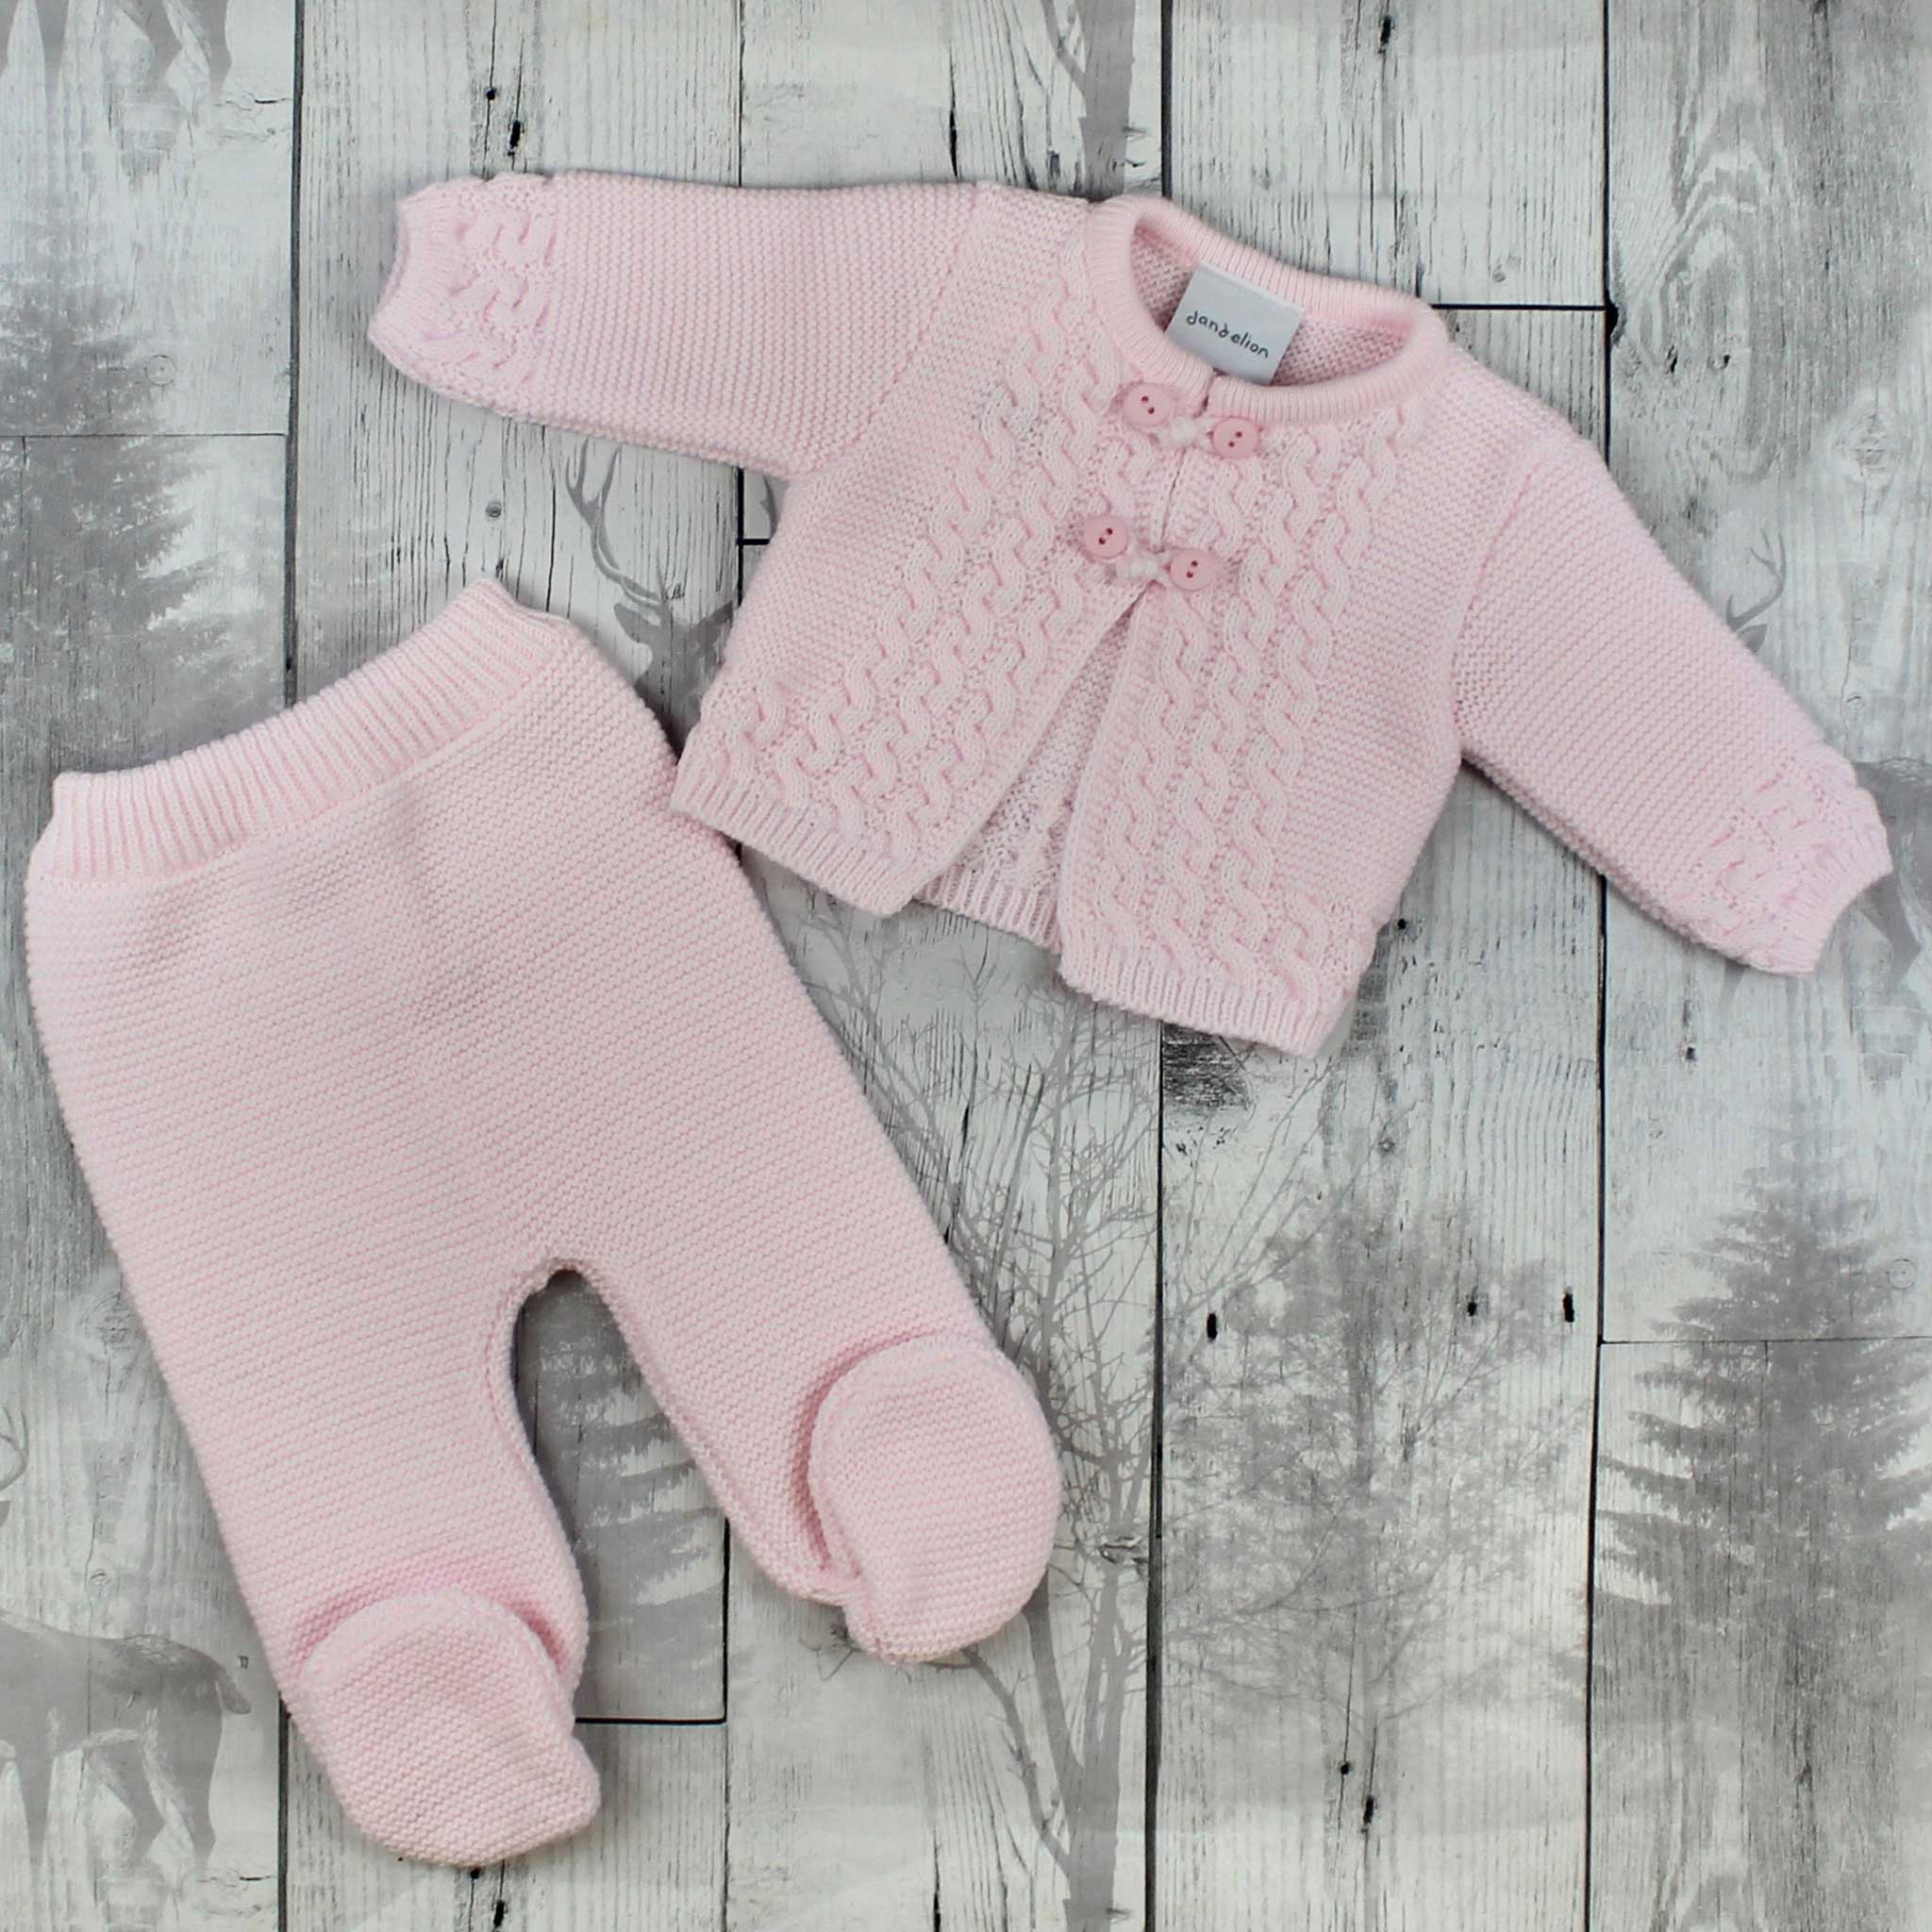 Pink Pram Suit - Knitted Two Piece Outfit